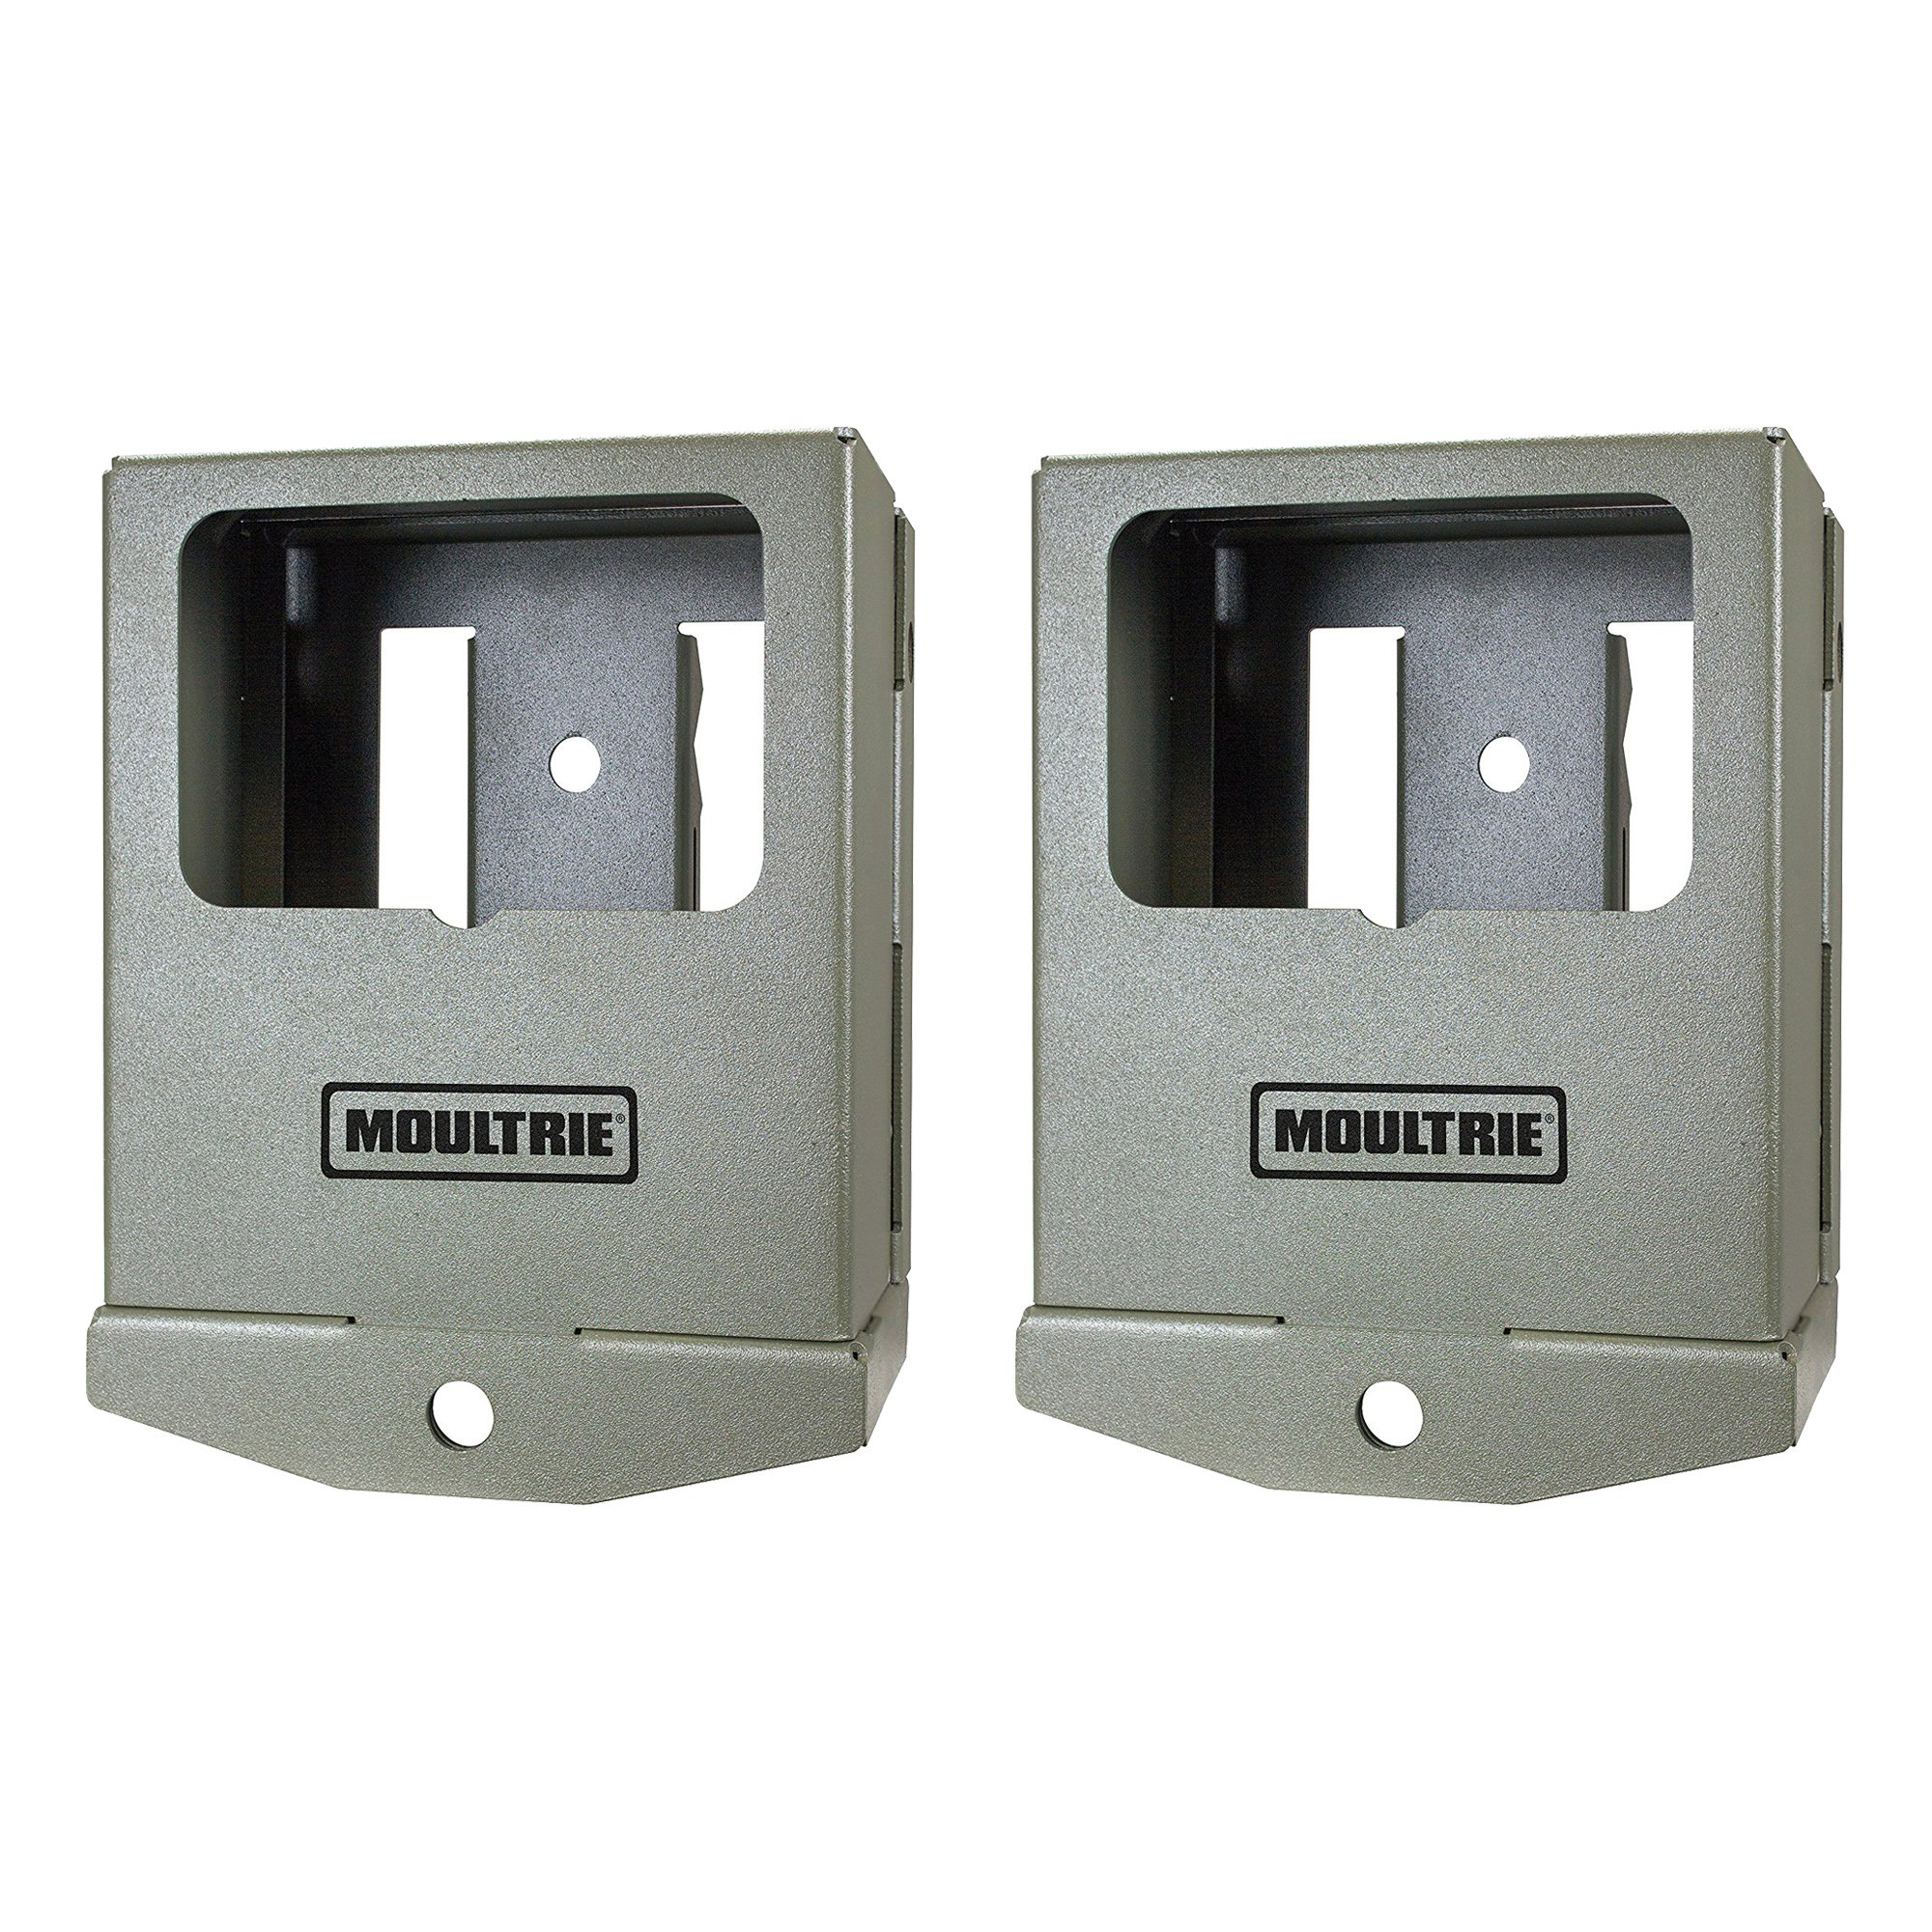 Moultrie S Series 2017 Model Game Camera Security Case Box, 2 Pack | MCA-13188